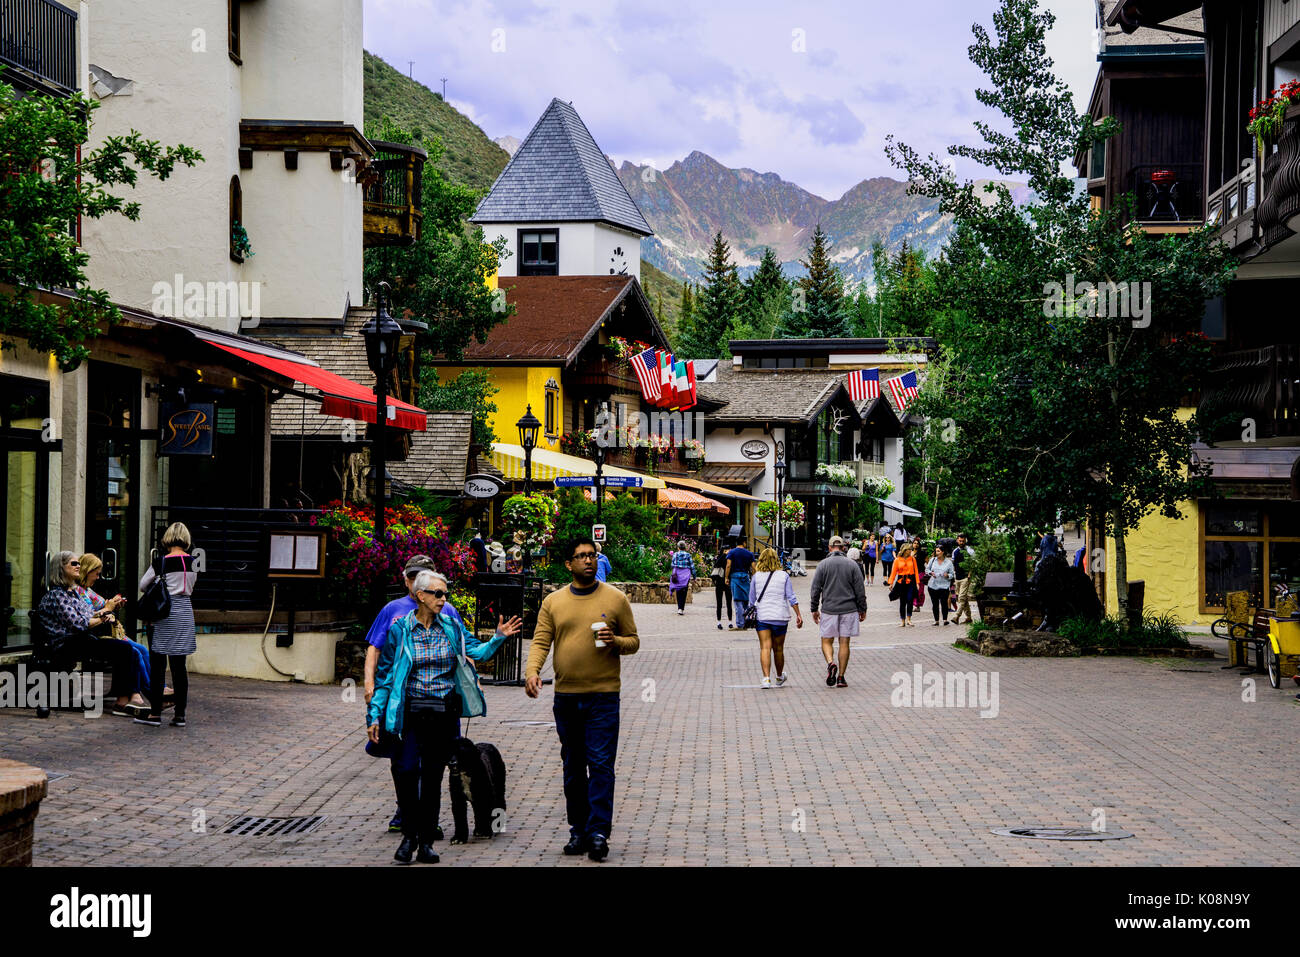 Main Streett in Vail Ski Resort, Vail, CO, United States - Stock Image